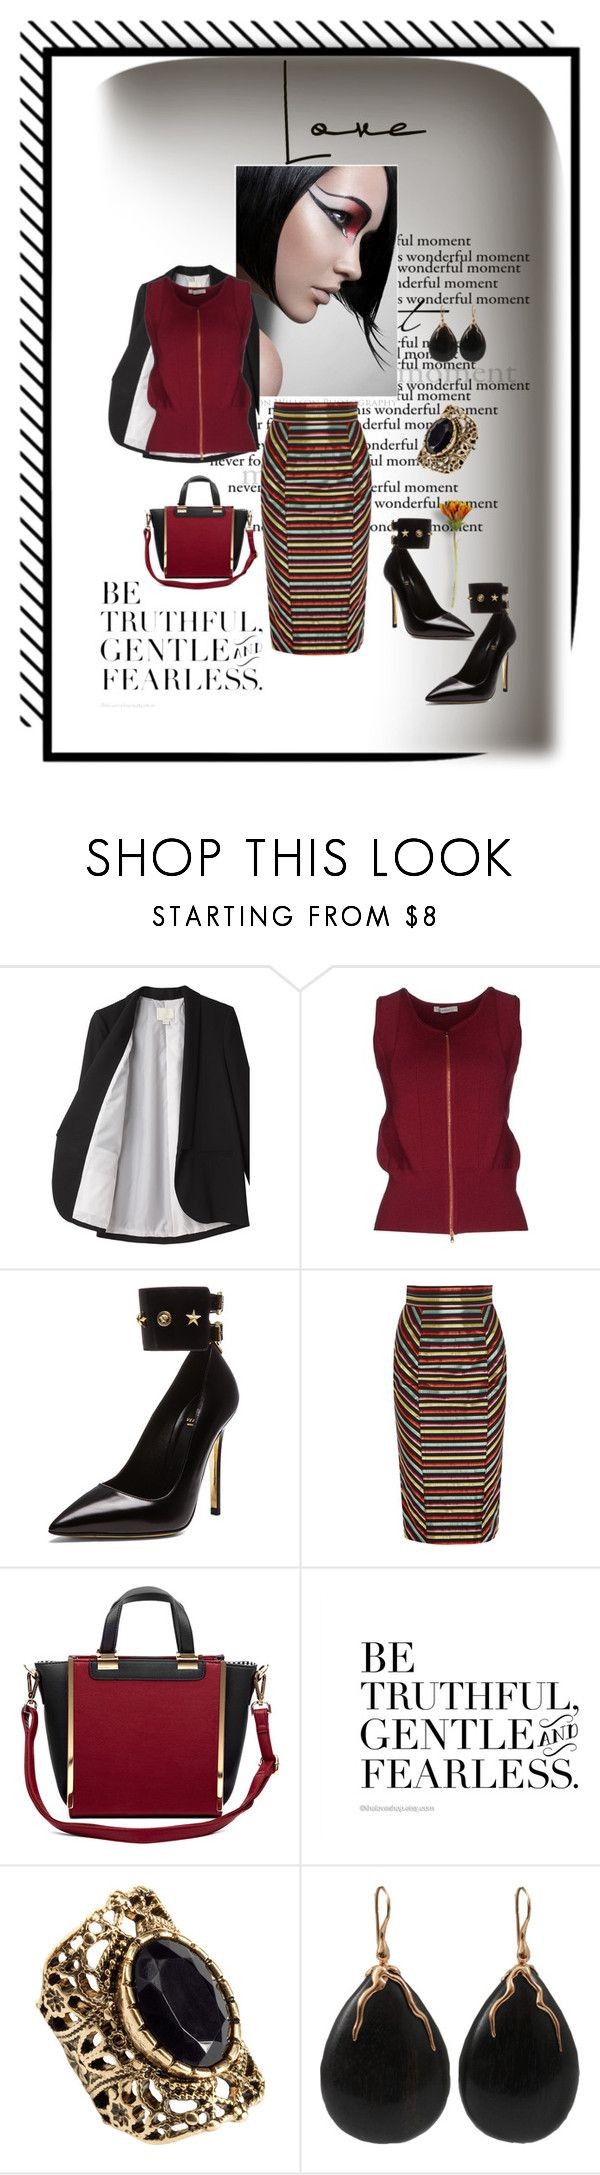 """She seeks gentle giant..."" by bossbabe1 ❤ liked on Polyvore featuring Band of Outsiders, BP Studio, Versace, L'Wren Scott, Sole Society, Tag, H&M and Lucifer Vir Honestus"